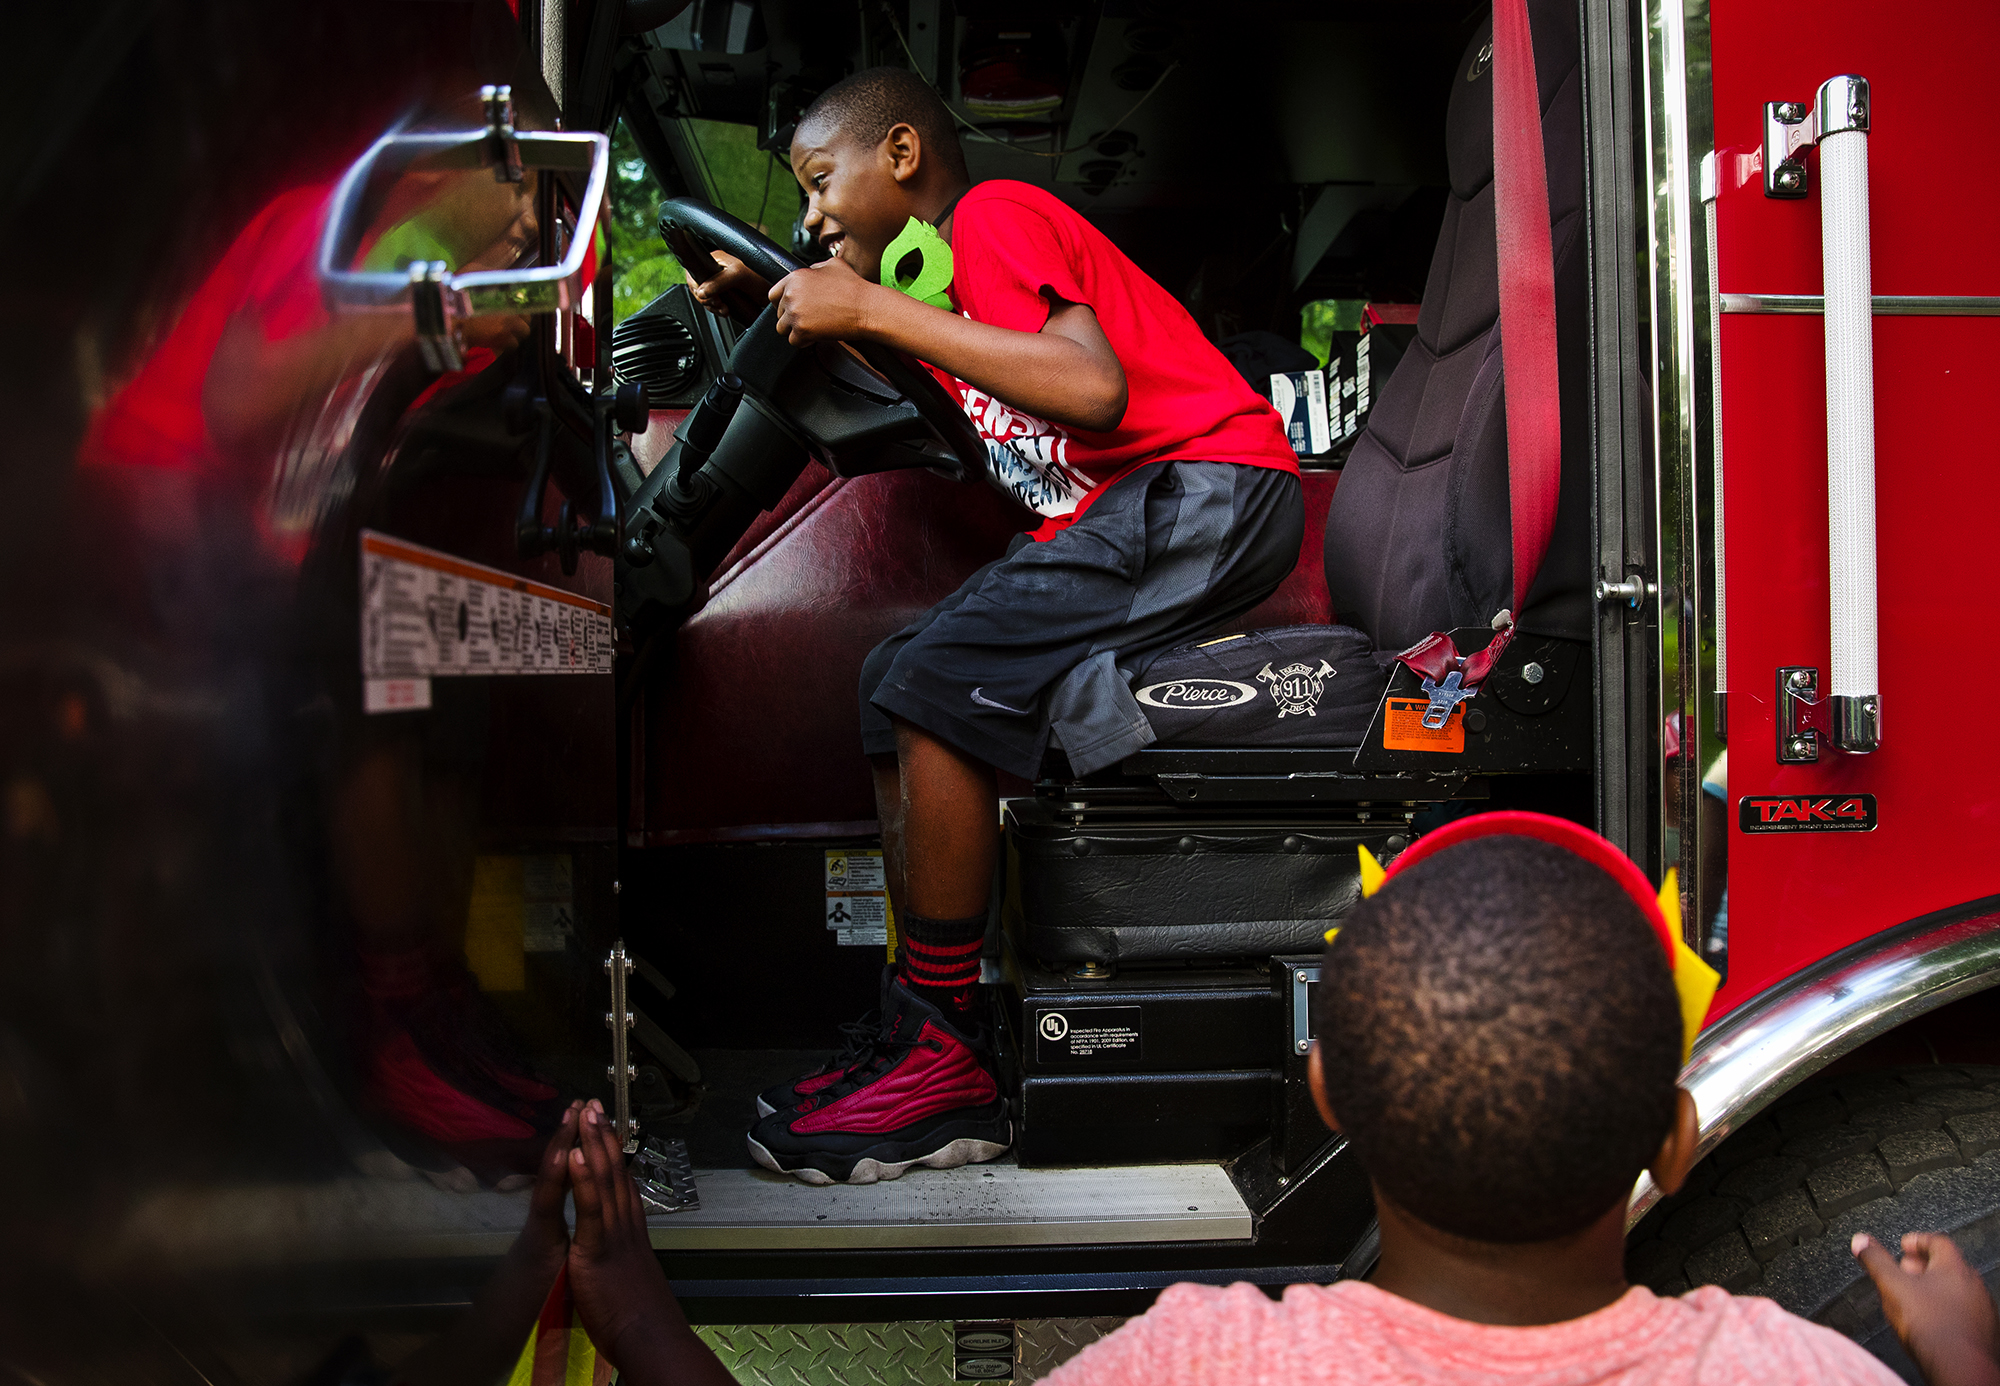 Christian Duncan gets behind the wheel of Springfield Fire Department's Engine Four from Station Four during a National Night Out event at Enos Park Tuesday, Aug. 7, 2018. Multiple events took place across Springfield to promote community-building, camaraderie and to make neighborhoods safer, more caring places to live. [Ted Schurter/The State Journal-Register]